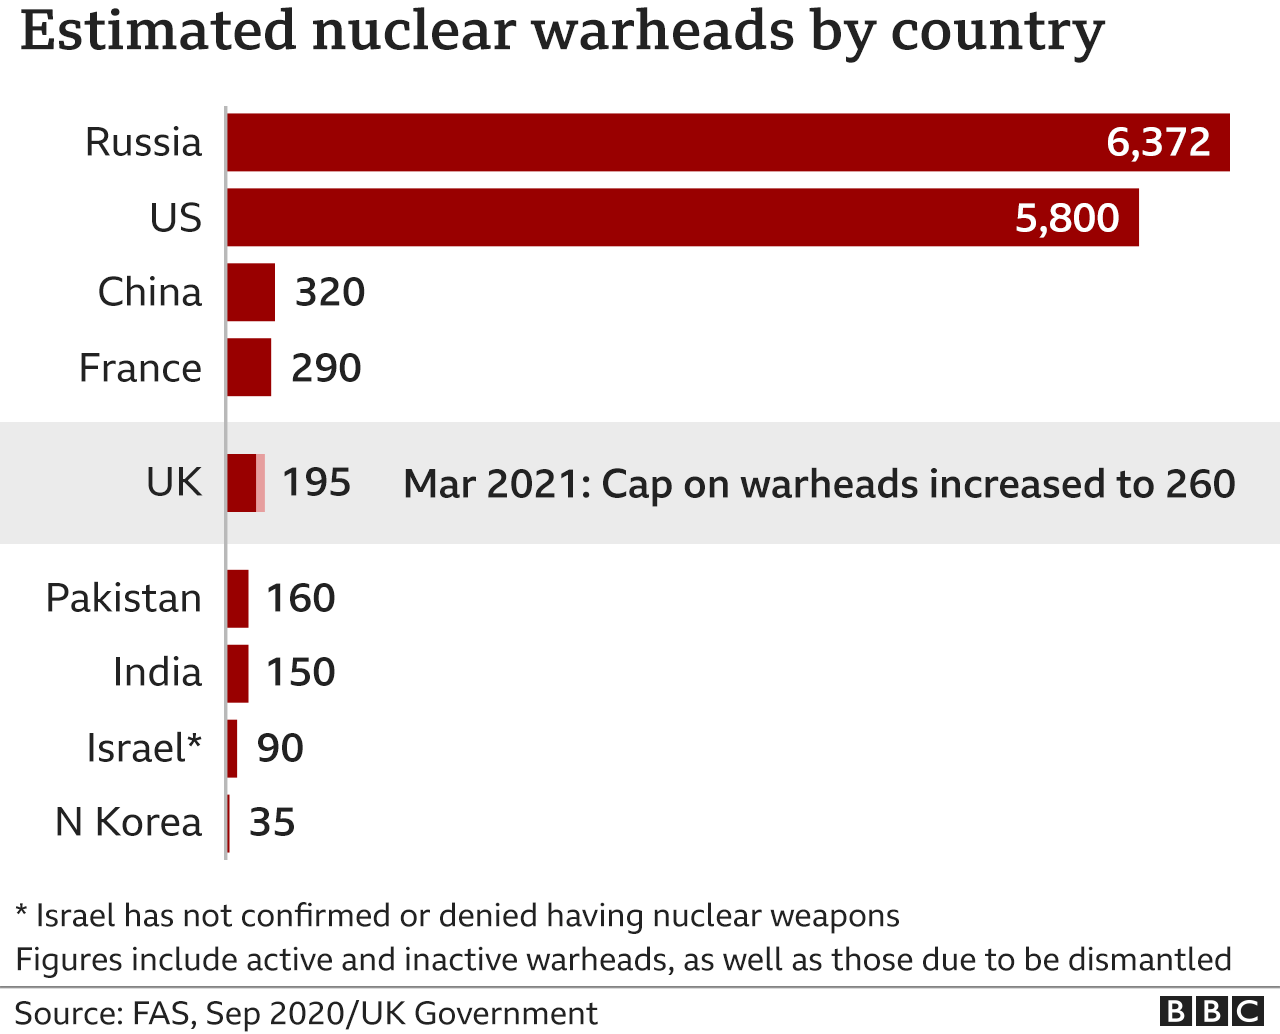 Chart showing nuclear warheads per country